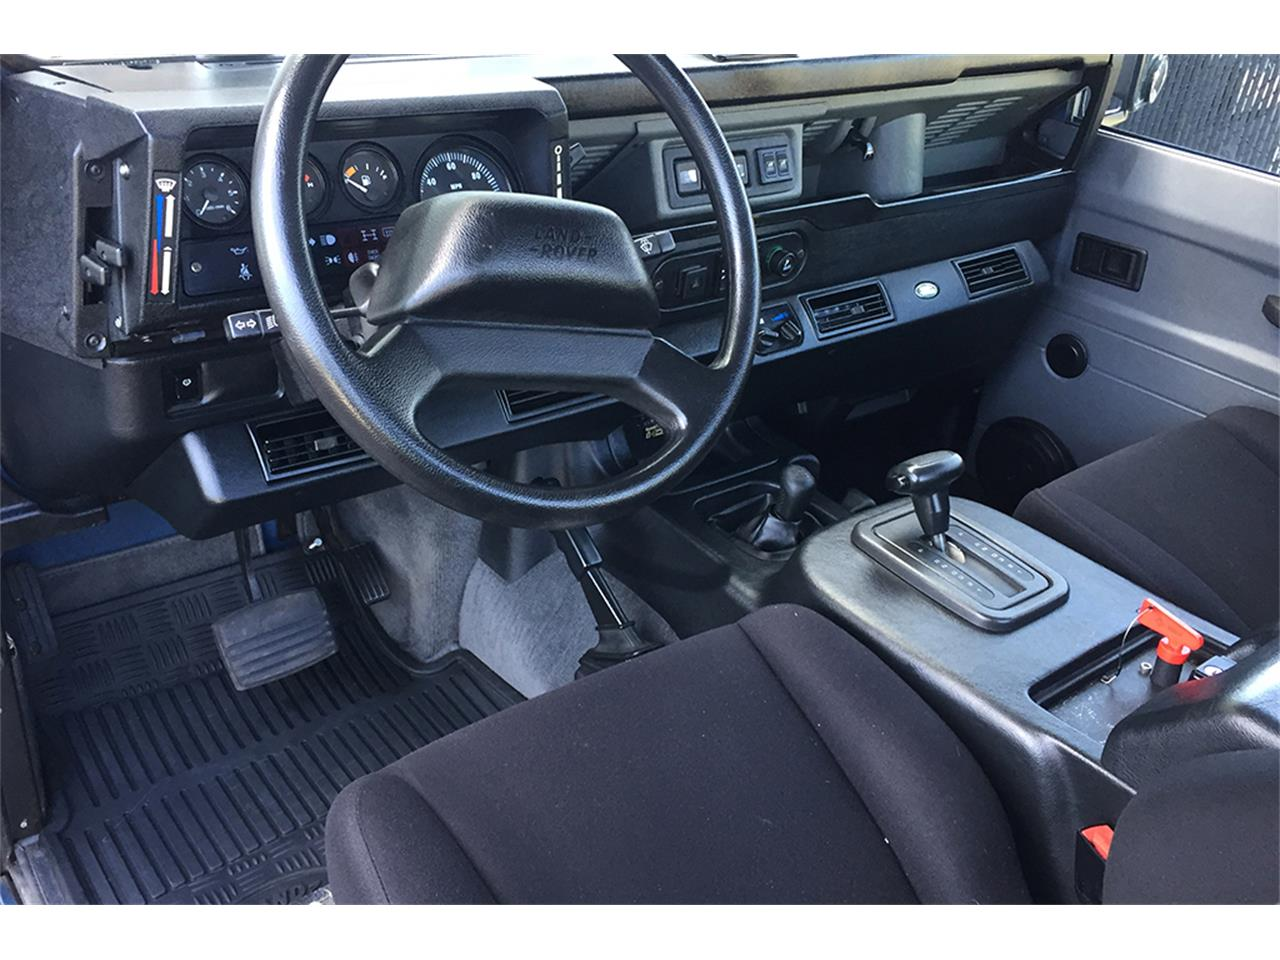 Large Picture of '97 Land Rover Defender located in New York - $89,000.00 Offered by Aventura Motors - MC5M